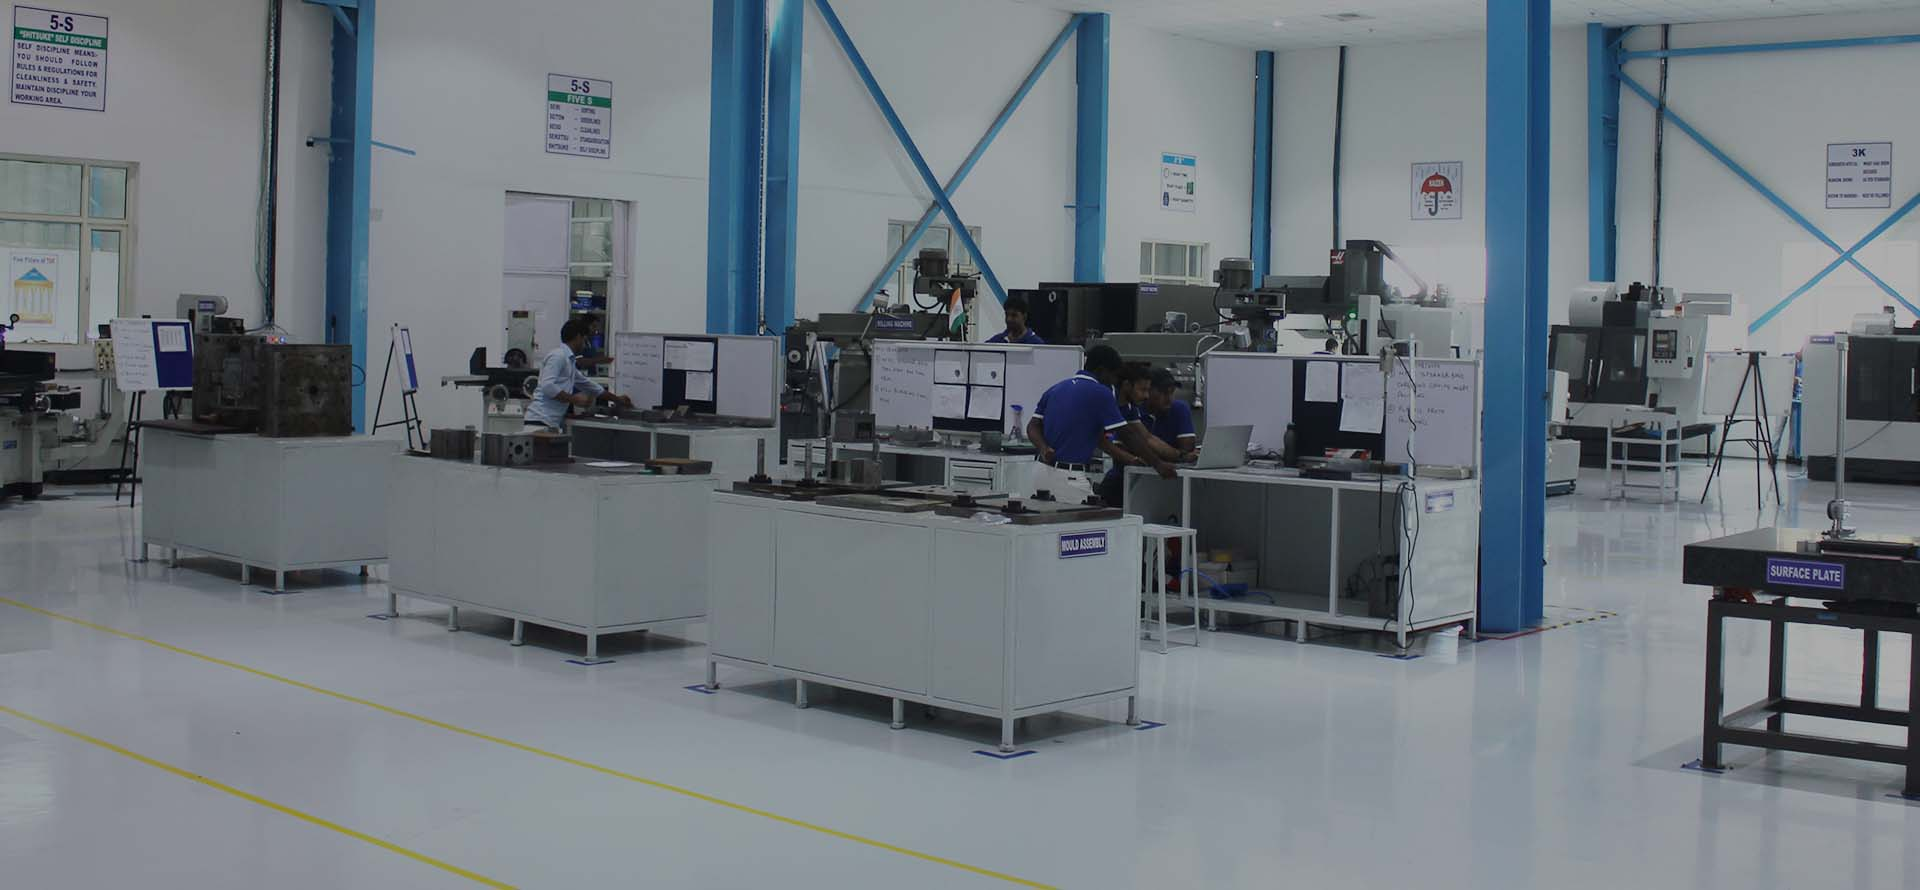 Tool, mold & rapid proto facility, Fastest growing ODM based out of India focusing on delivering quality products for the connected world